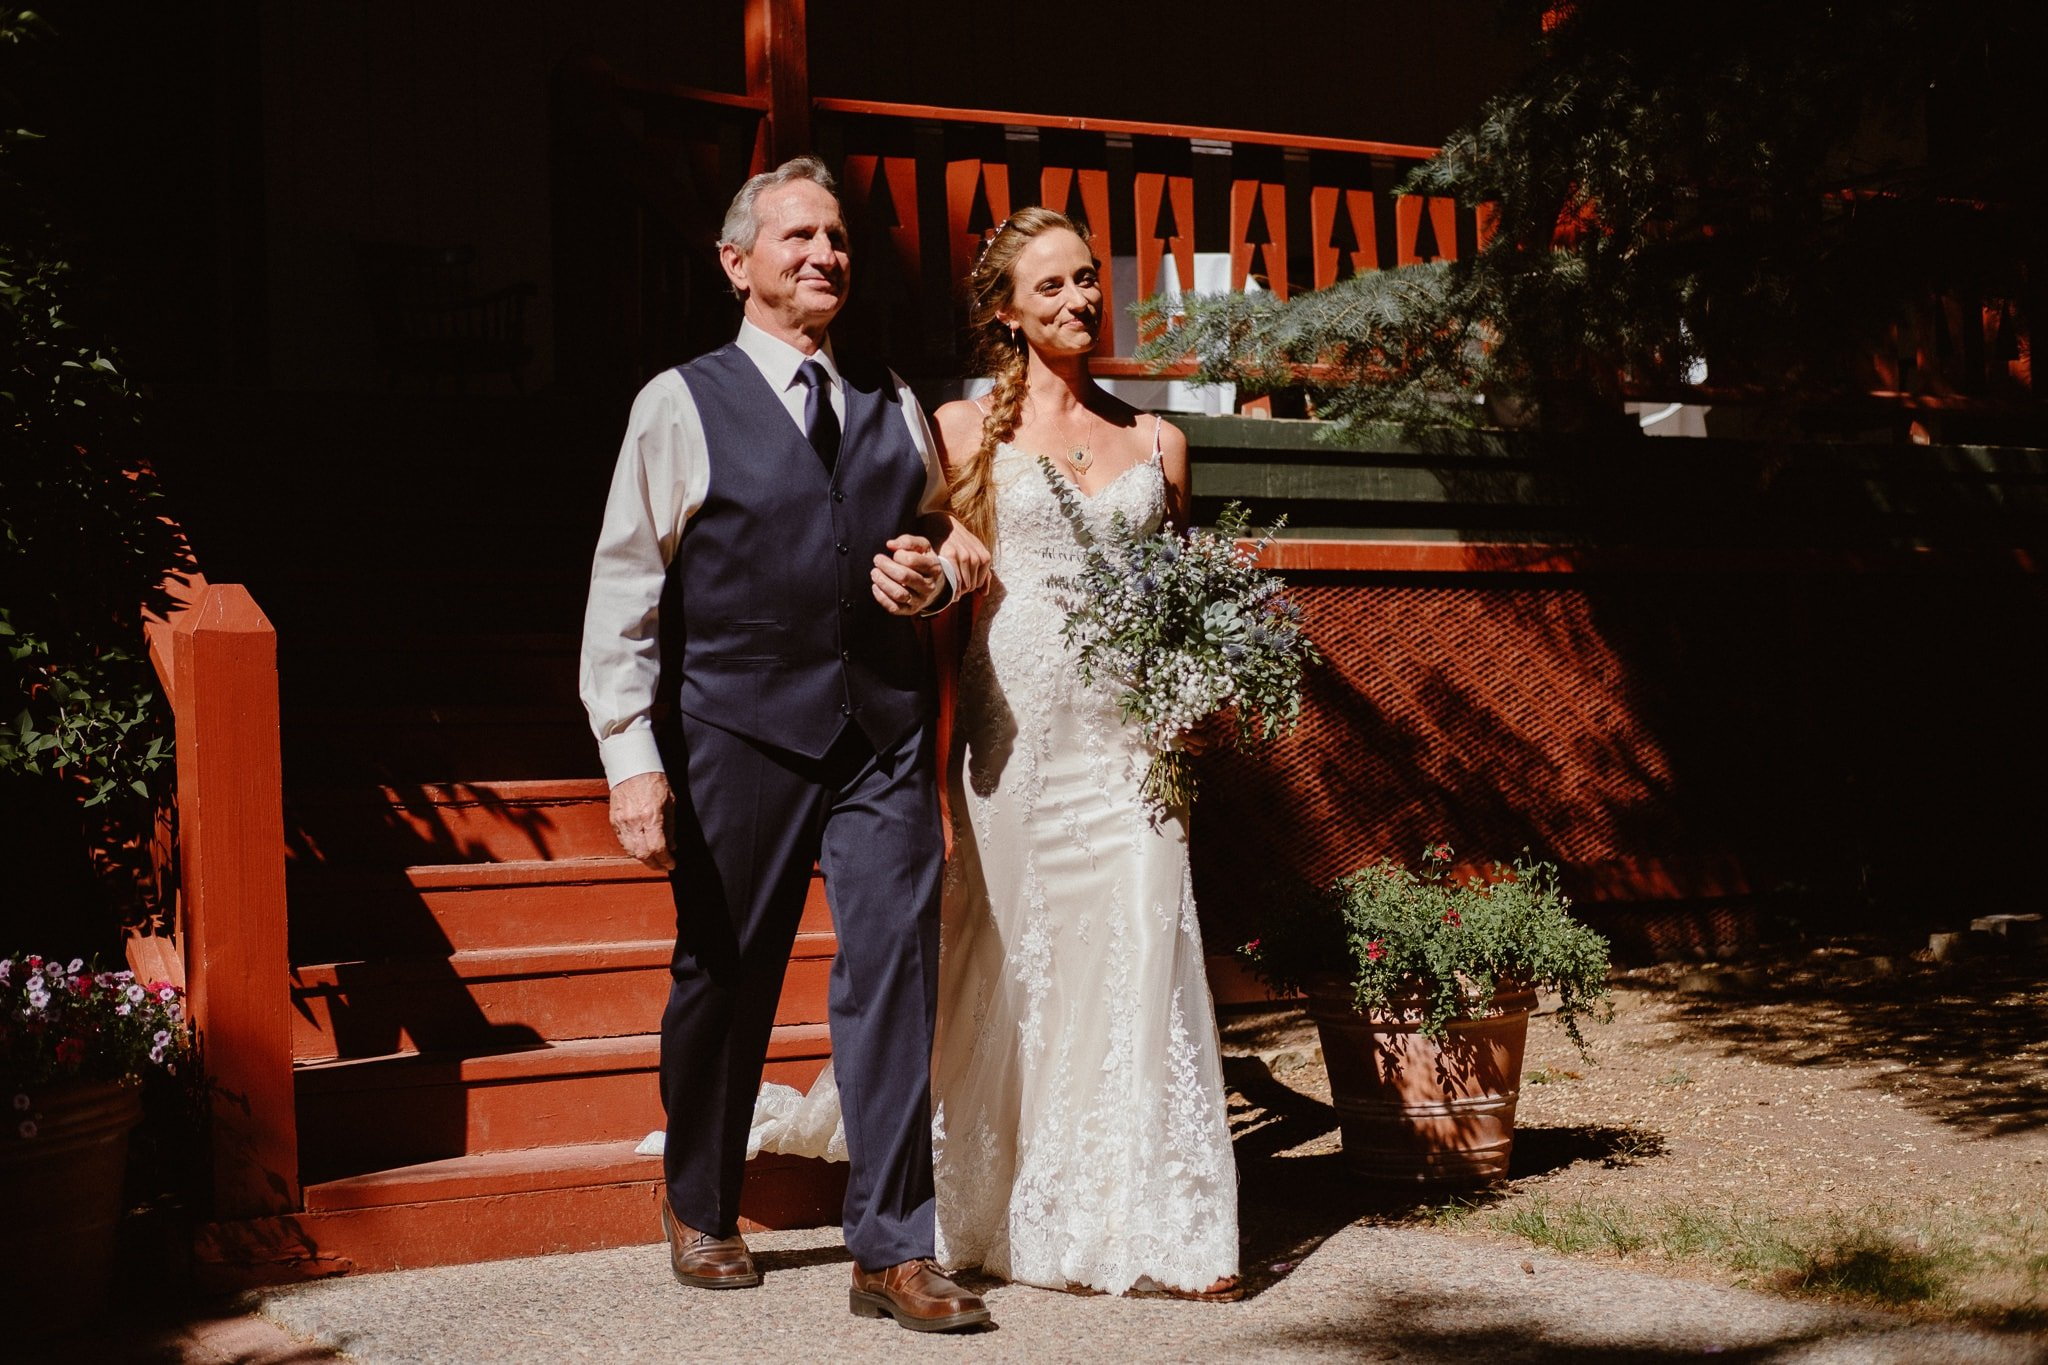 Redstone Inn wedding photographer, Carbondale wedding photographer, Colorado intimate wedding photographer, wedding ceremony processional